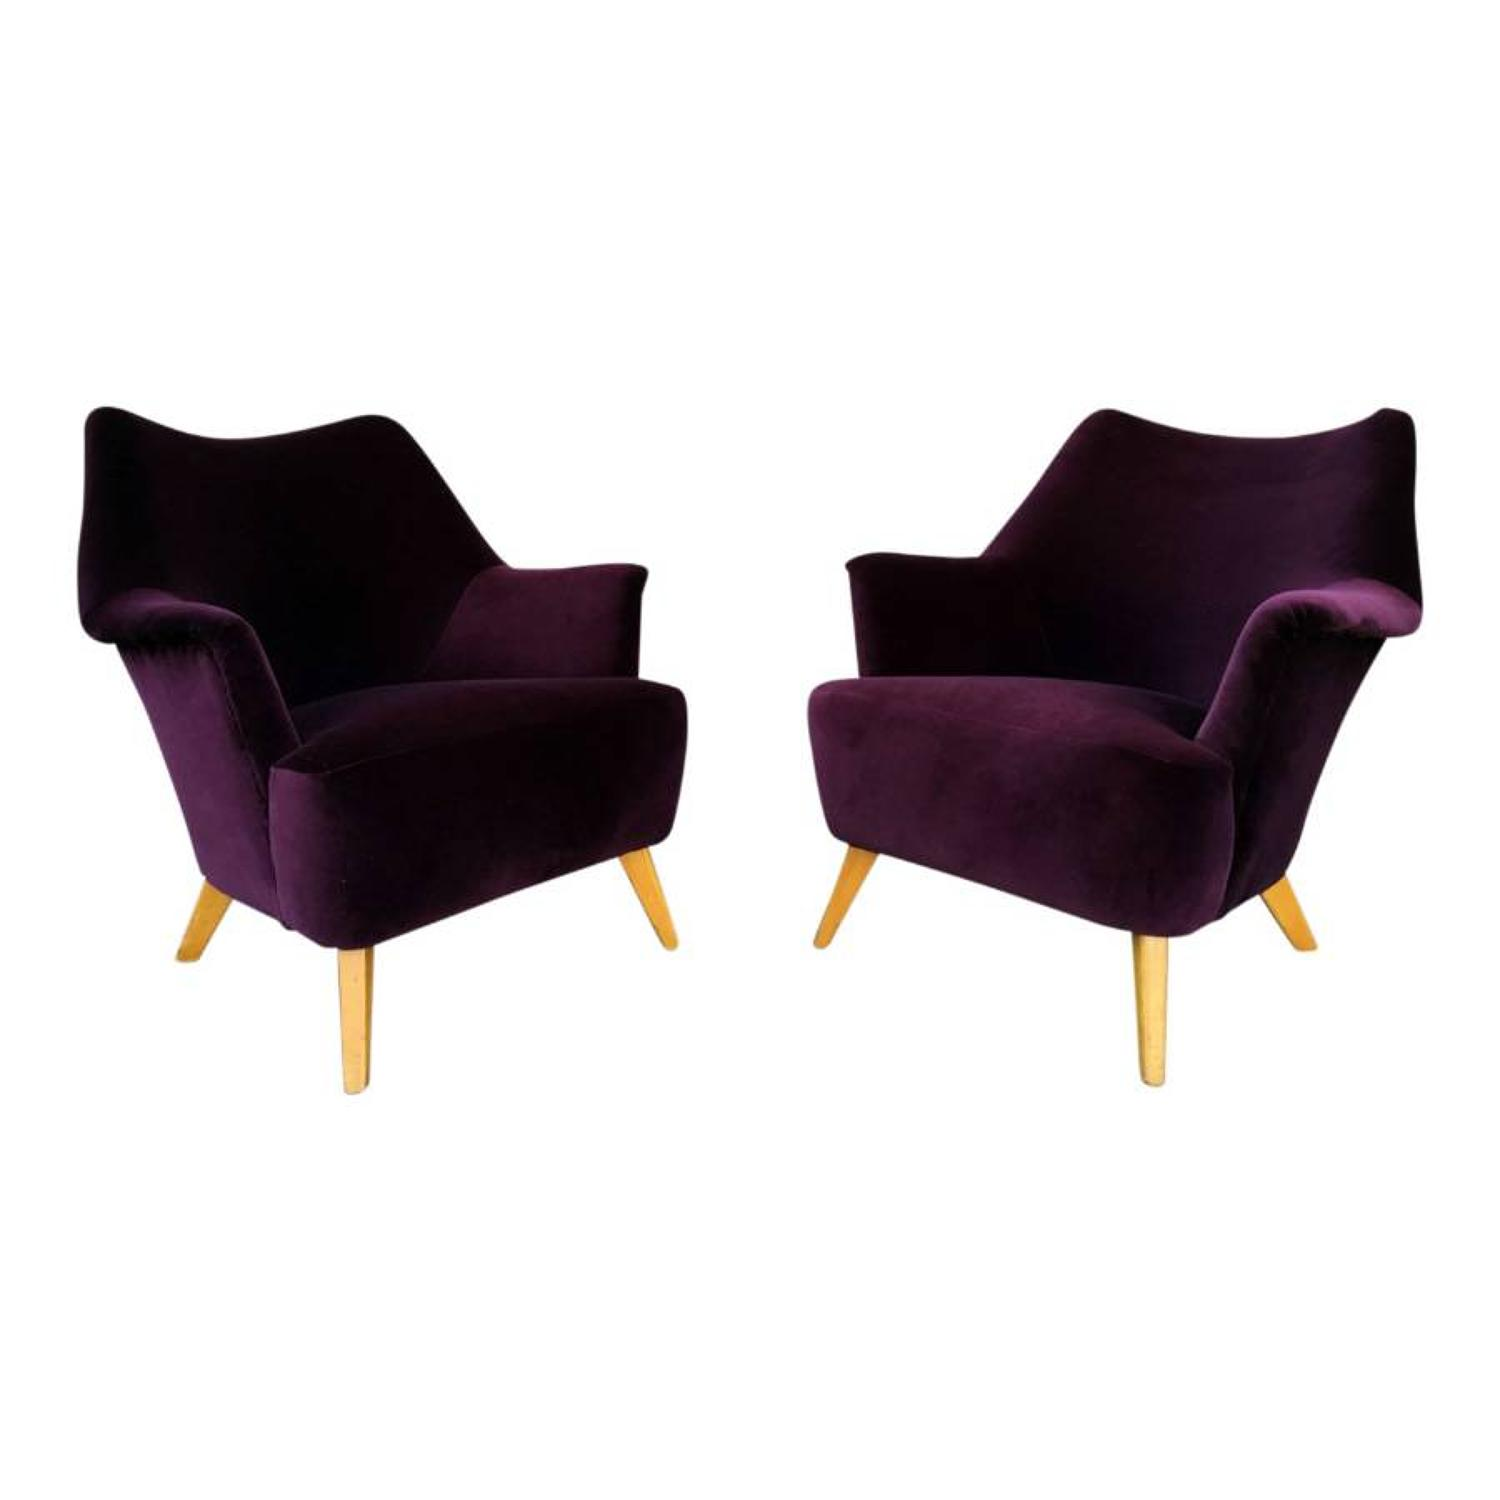 A pair of 1950s armchairs in new plum velvet